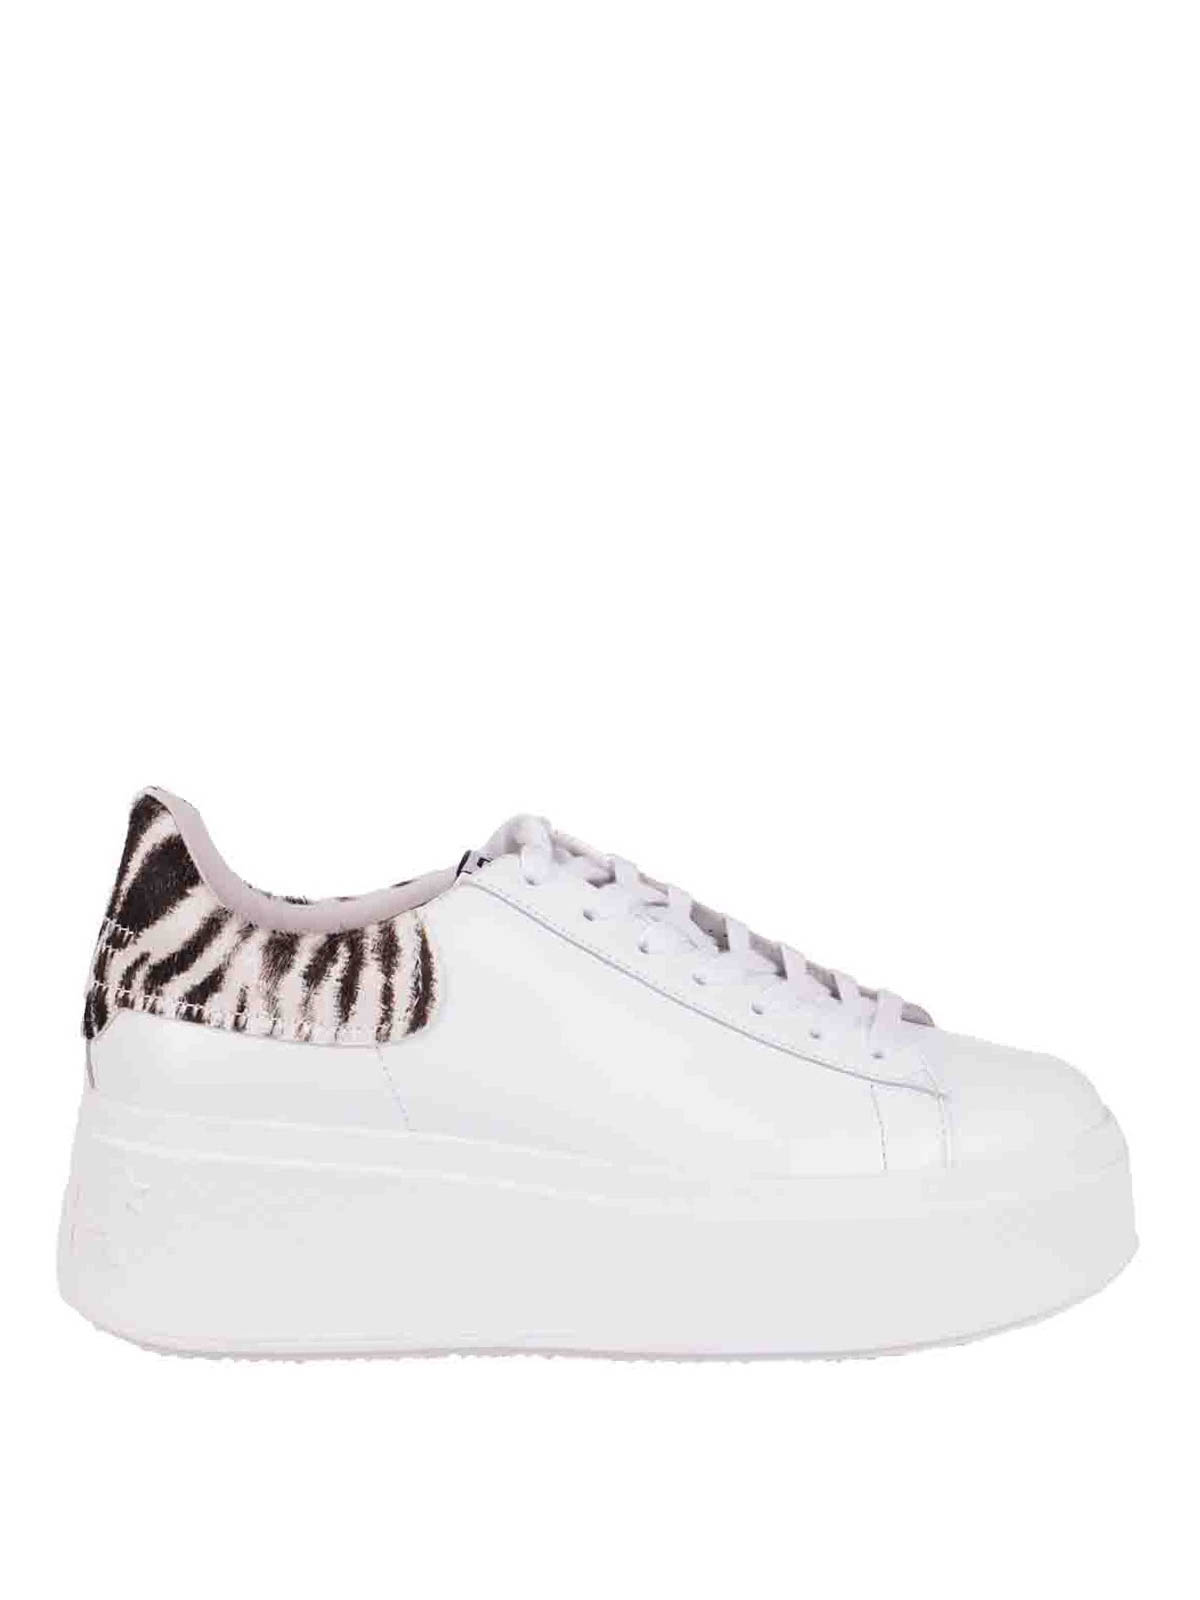 Ash ZEBRA-STRIPED HEEL TAB SNEAKERS